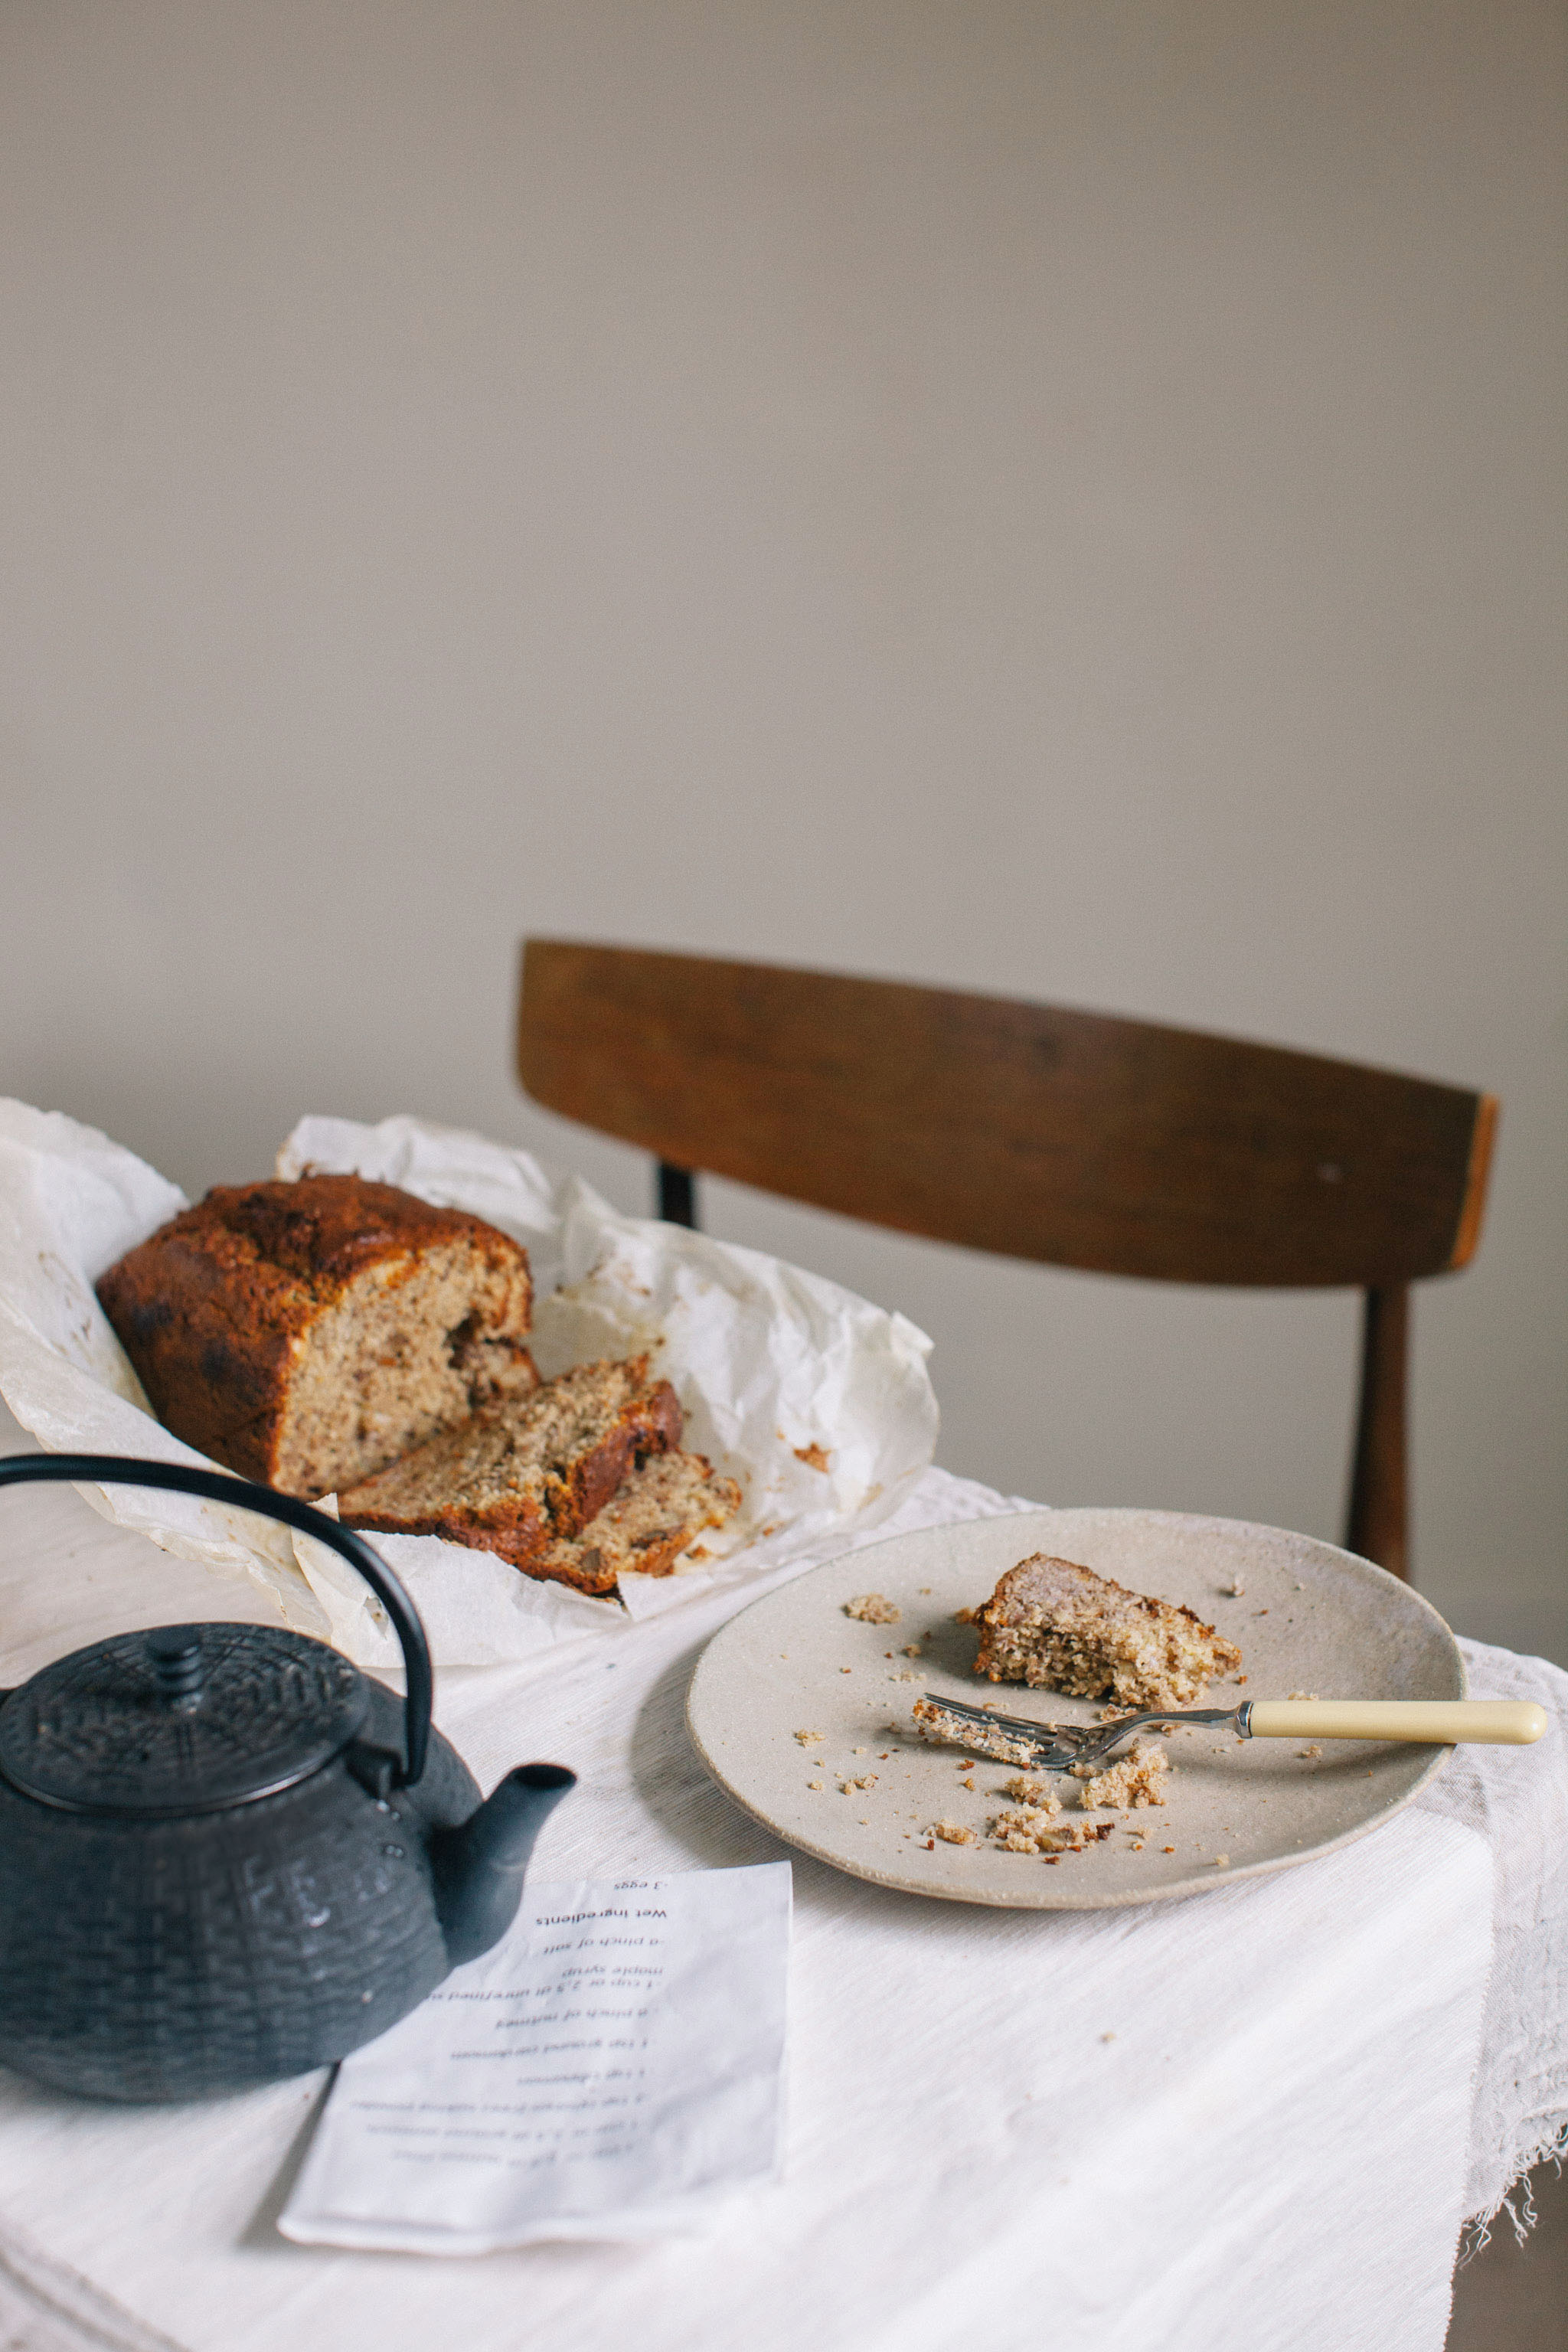 Easy gluten free banana bread made with quinoa flour and ground almonds. Retreat // Food and lifestyle blog based in Sussex. Photography by Emma Gutteridge.